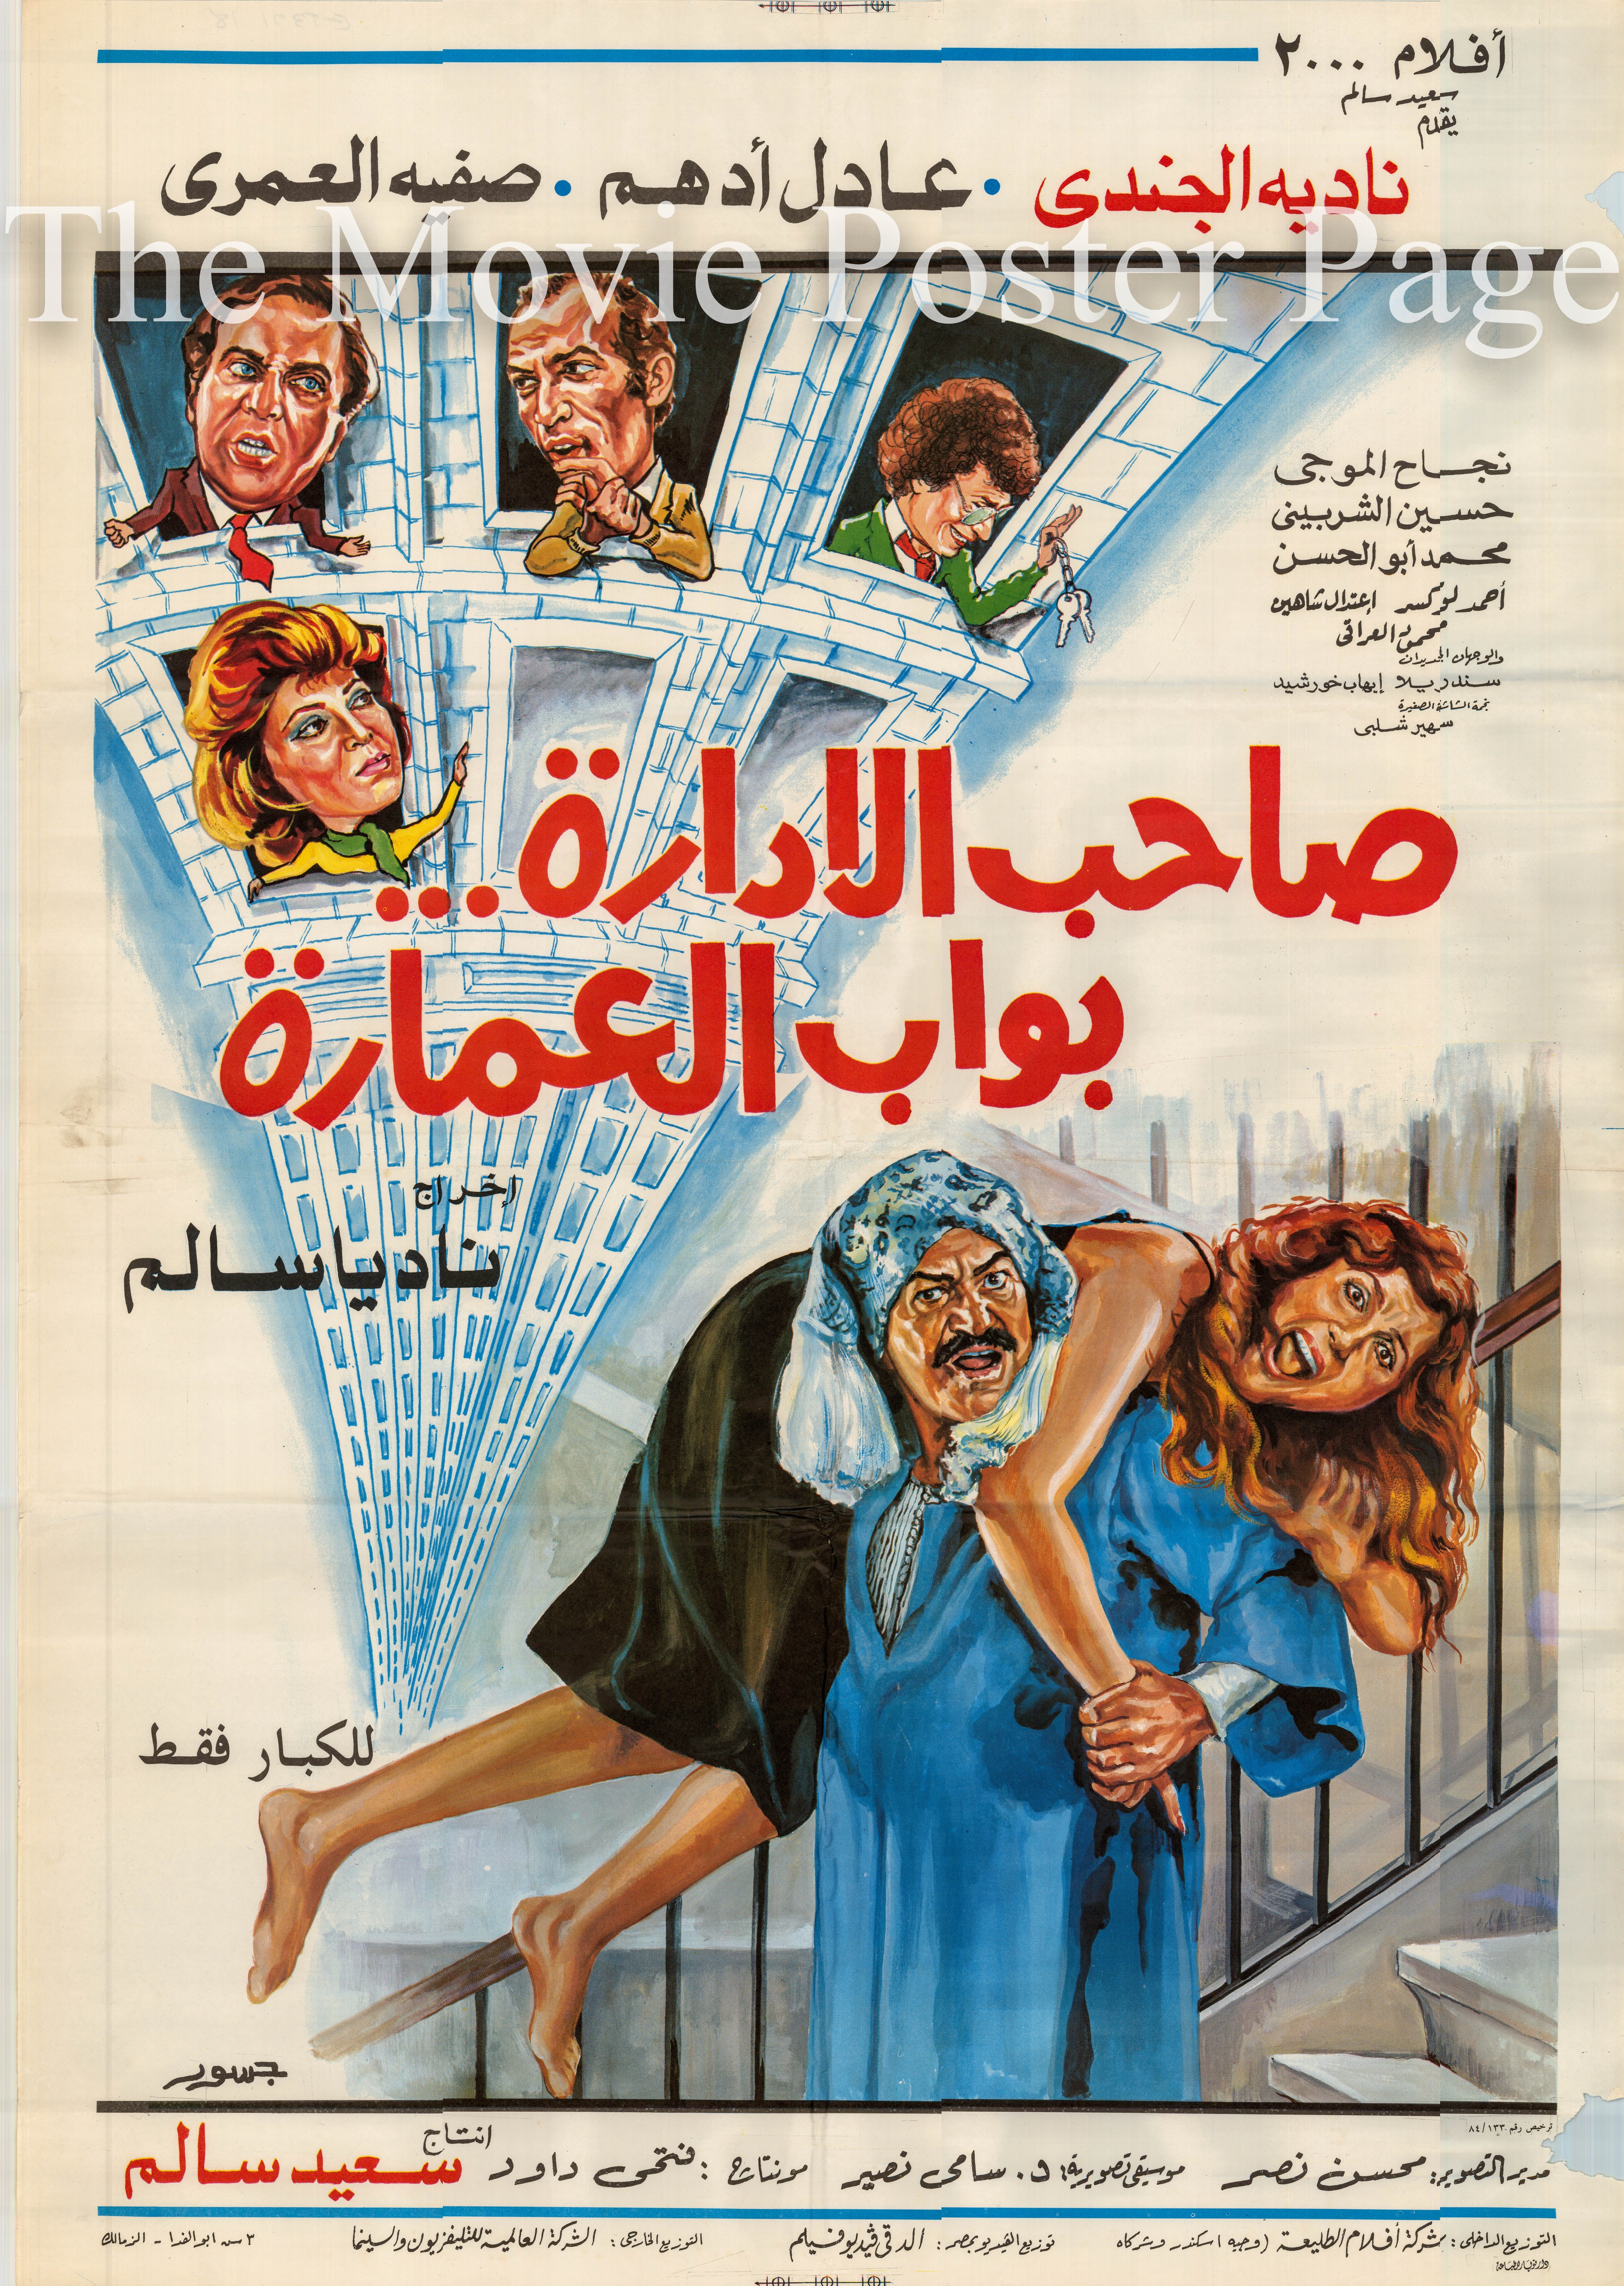 Pictured is an Egyptian promotional poster for the 1985 Nadia Salem film Office Owner, Building Doorman starring Nadia El Guindy as Zizi.